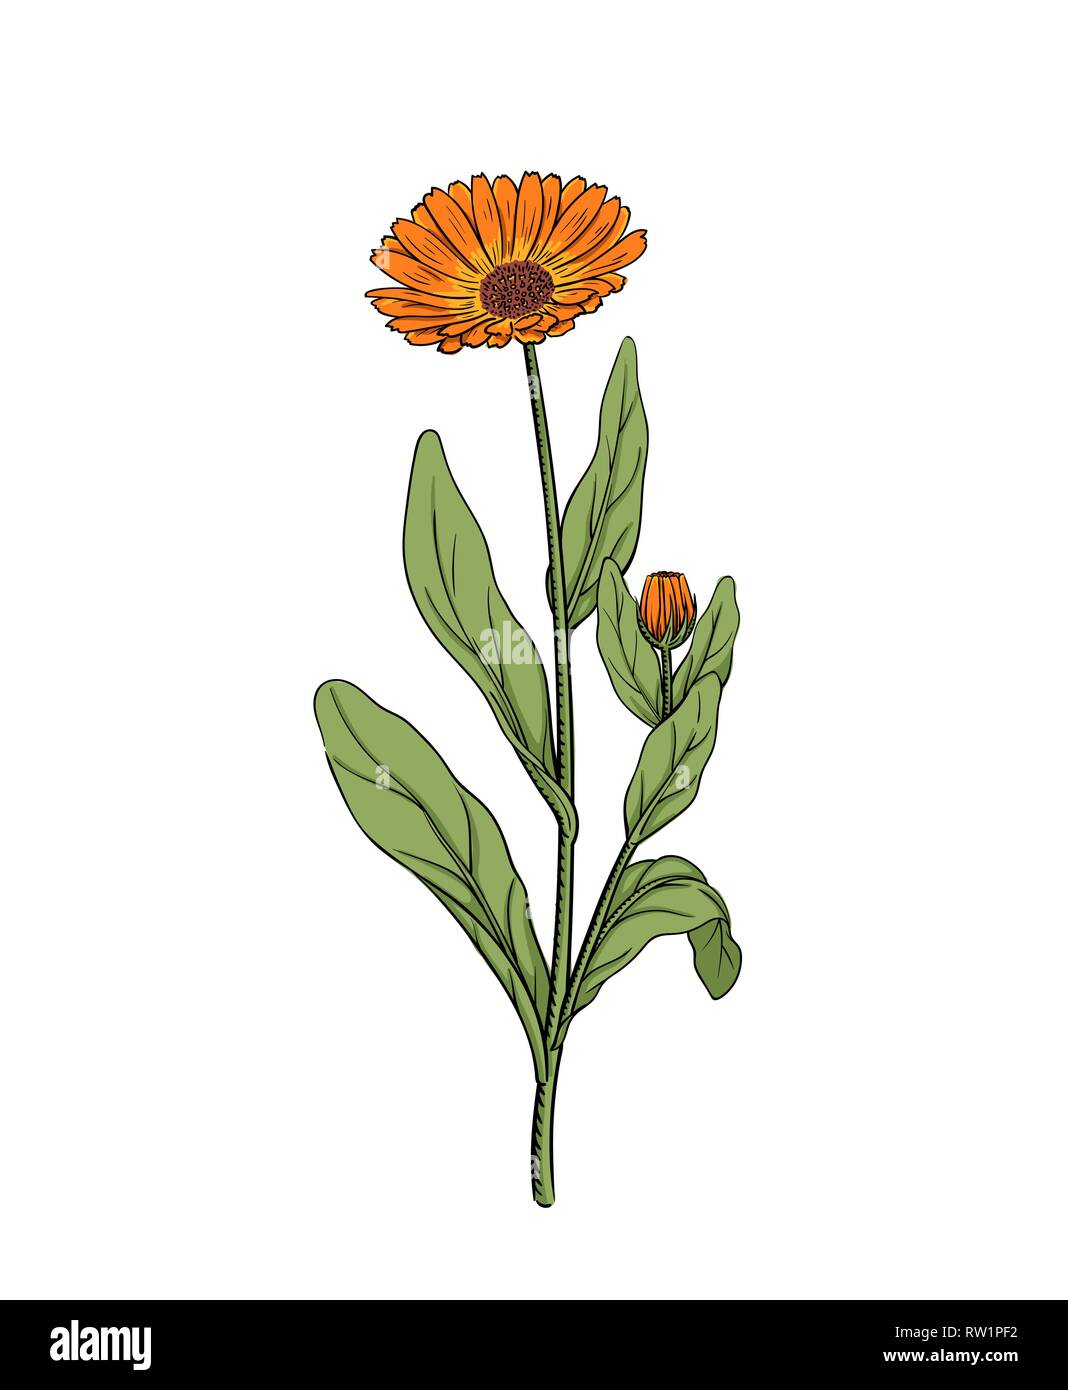 Calendula vector illustration of marigold flower twig sketch